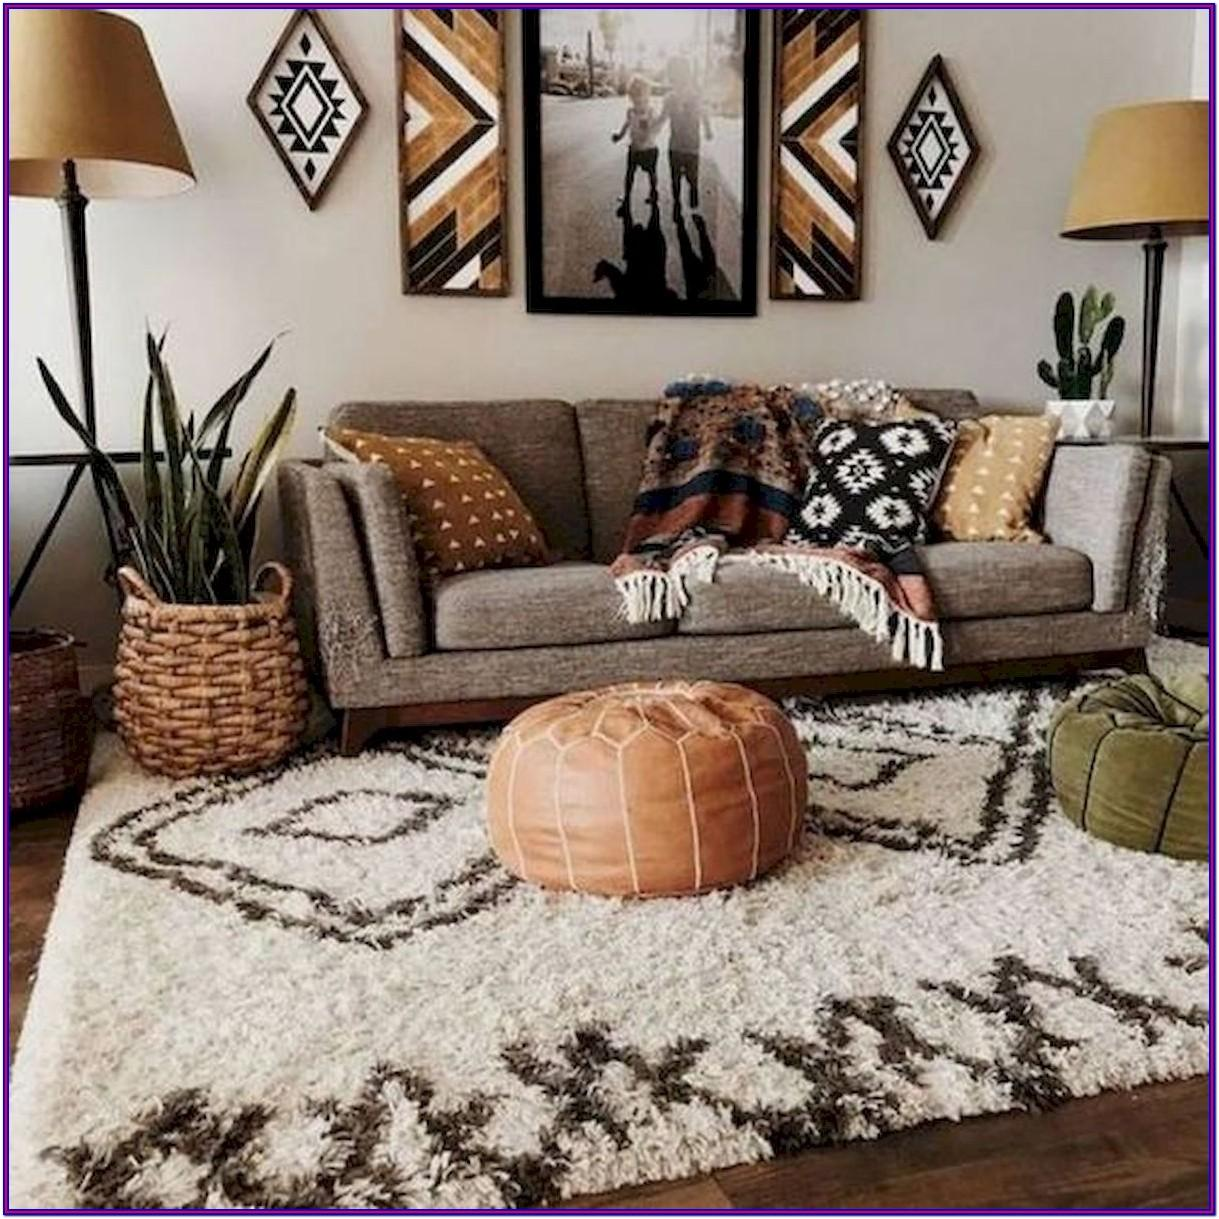 Gypsy Decorations Ideas Living Room